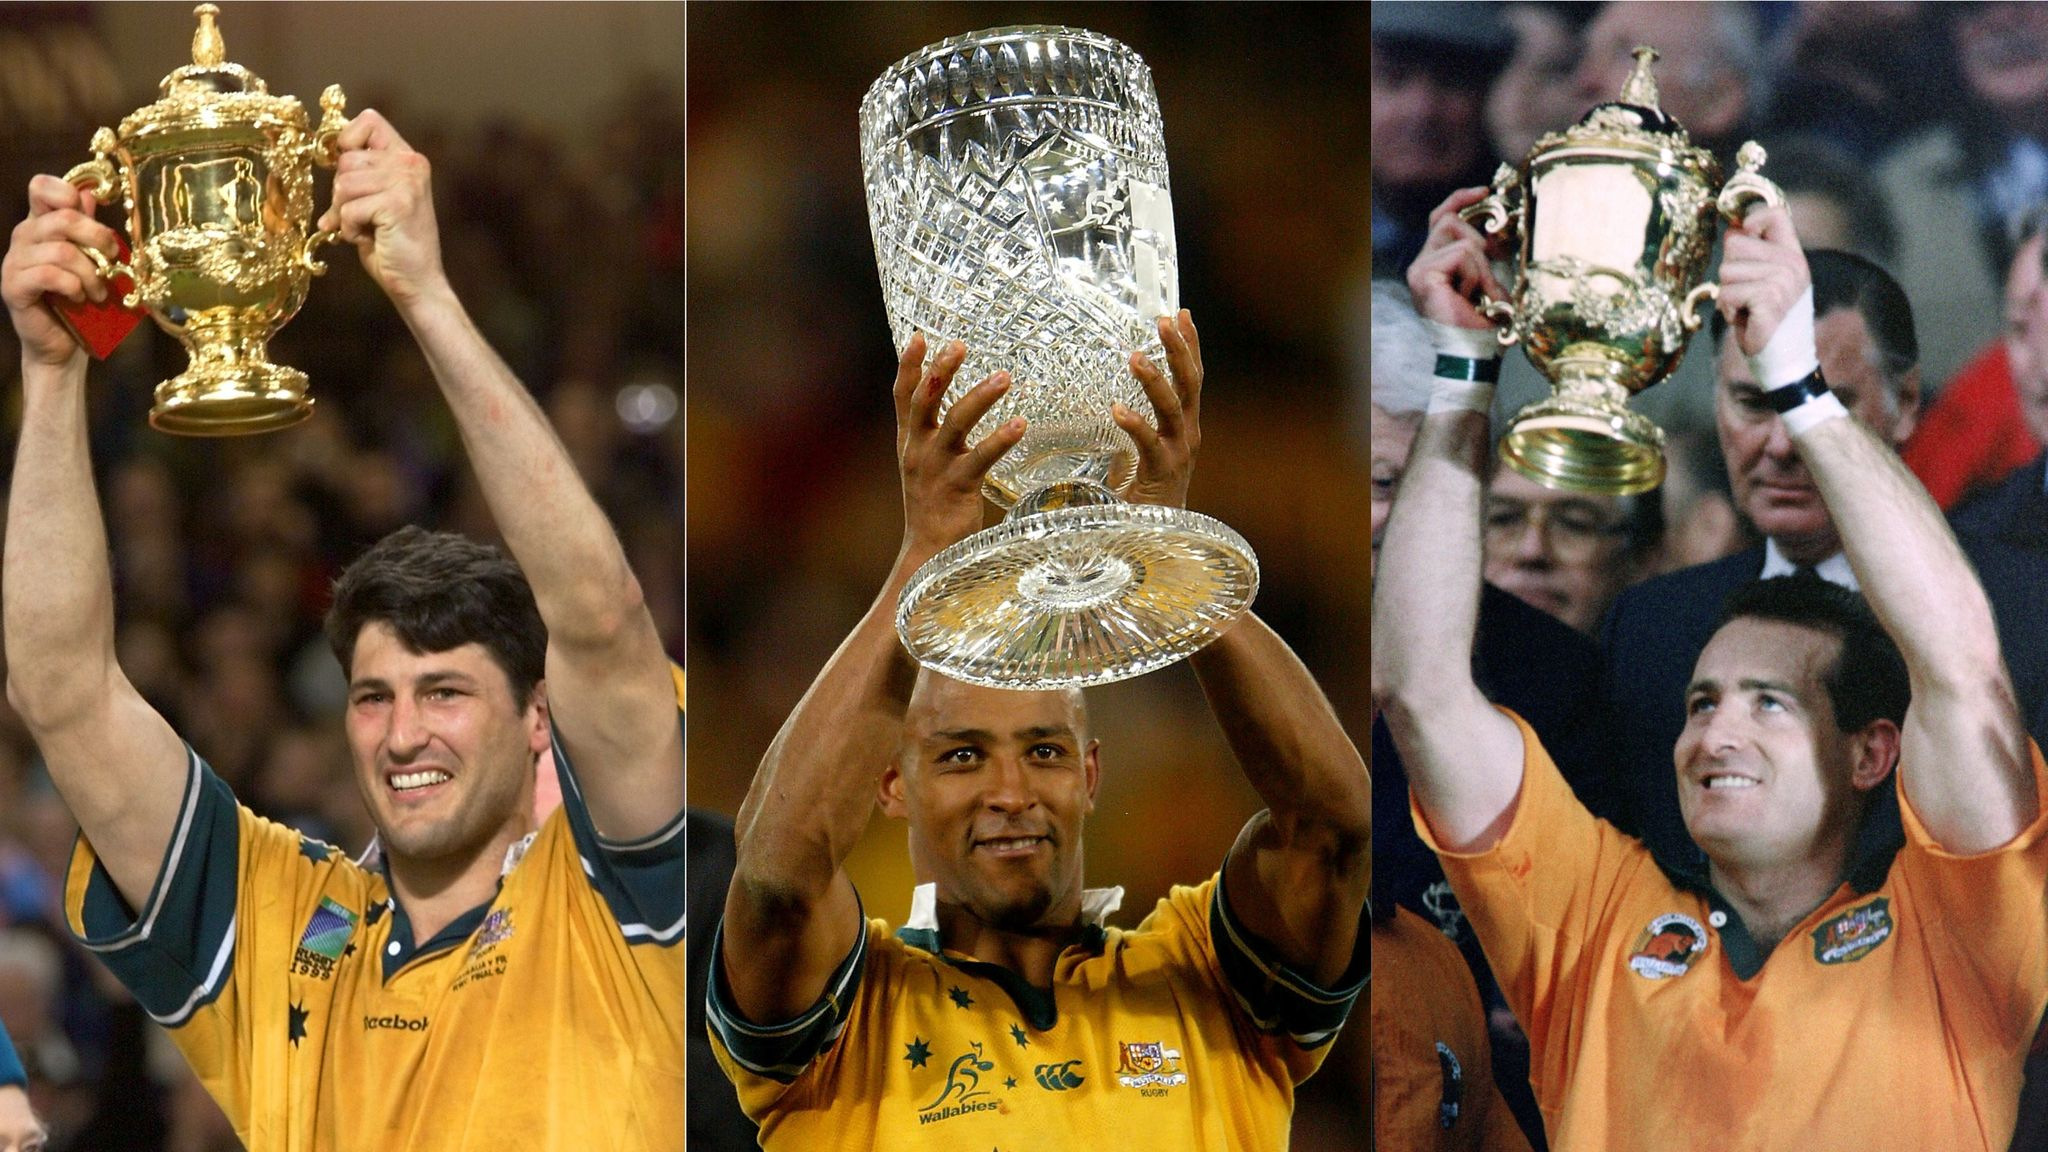 Rugby Union S Top 10 The Best Players For Australia Over The Years Rugby Union News Sky Sports